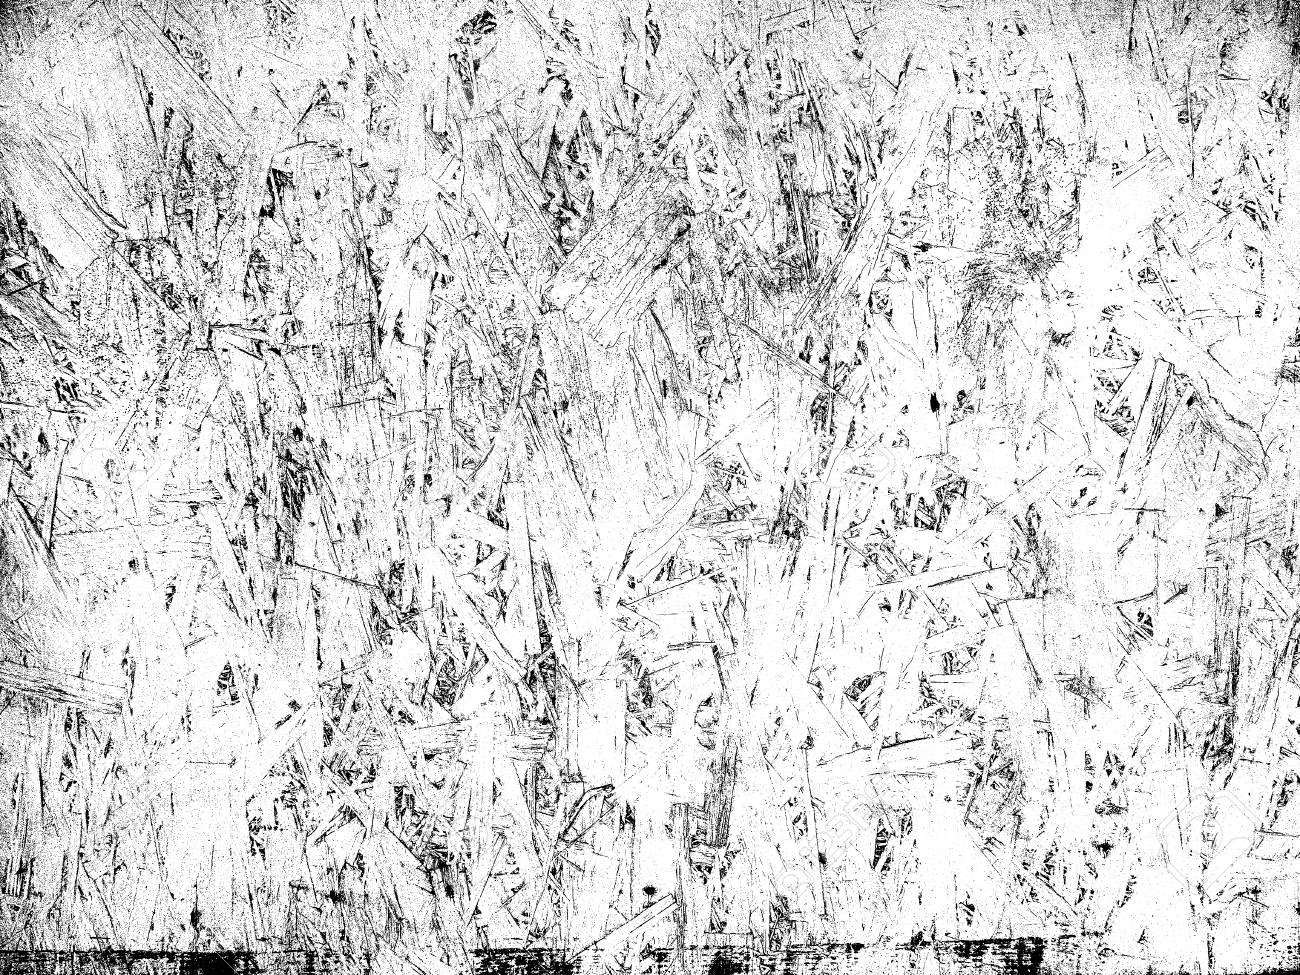 Rustic Stone Grit Texture Black Stains And Noise For Distressed Effect Old Worn Vintage Overlay White Paint Brushed Stroke Monochrome Concrete Wall